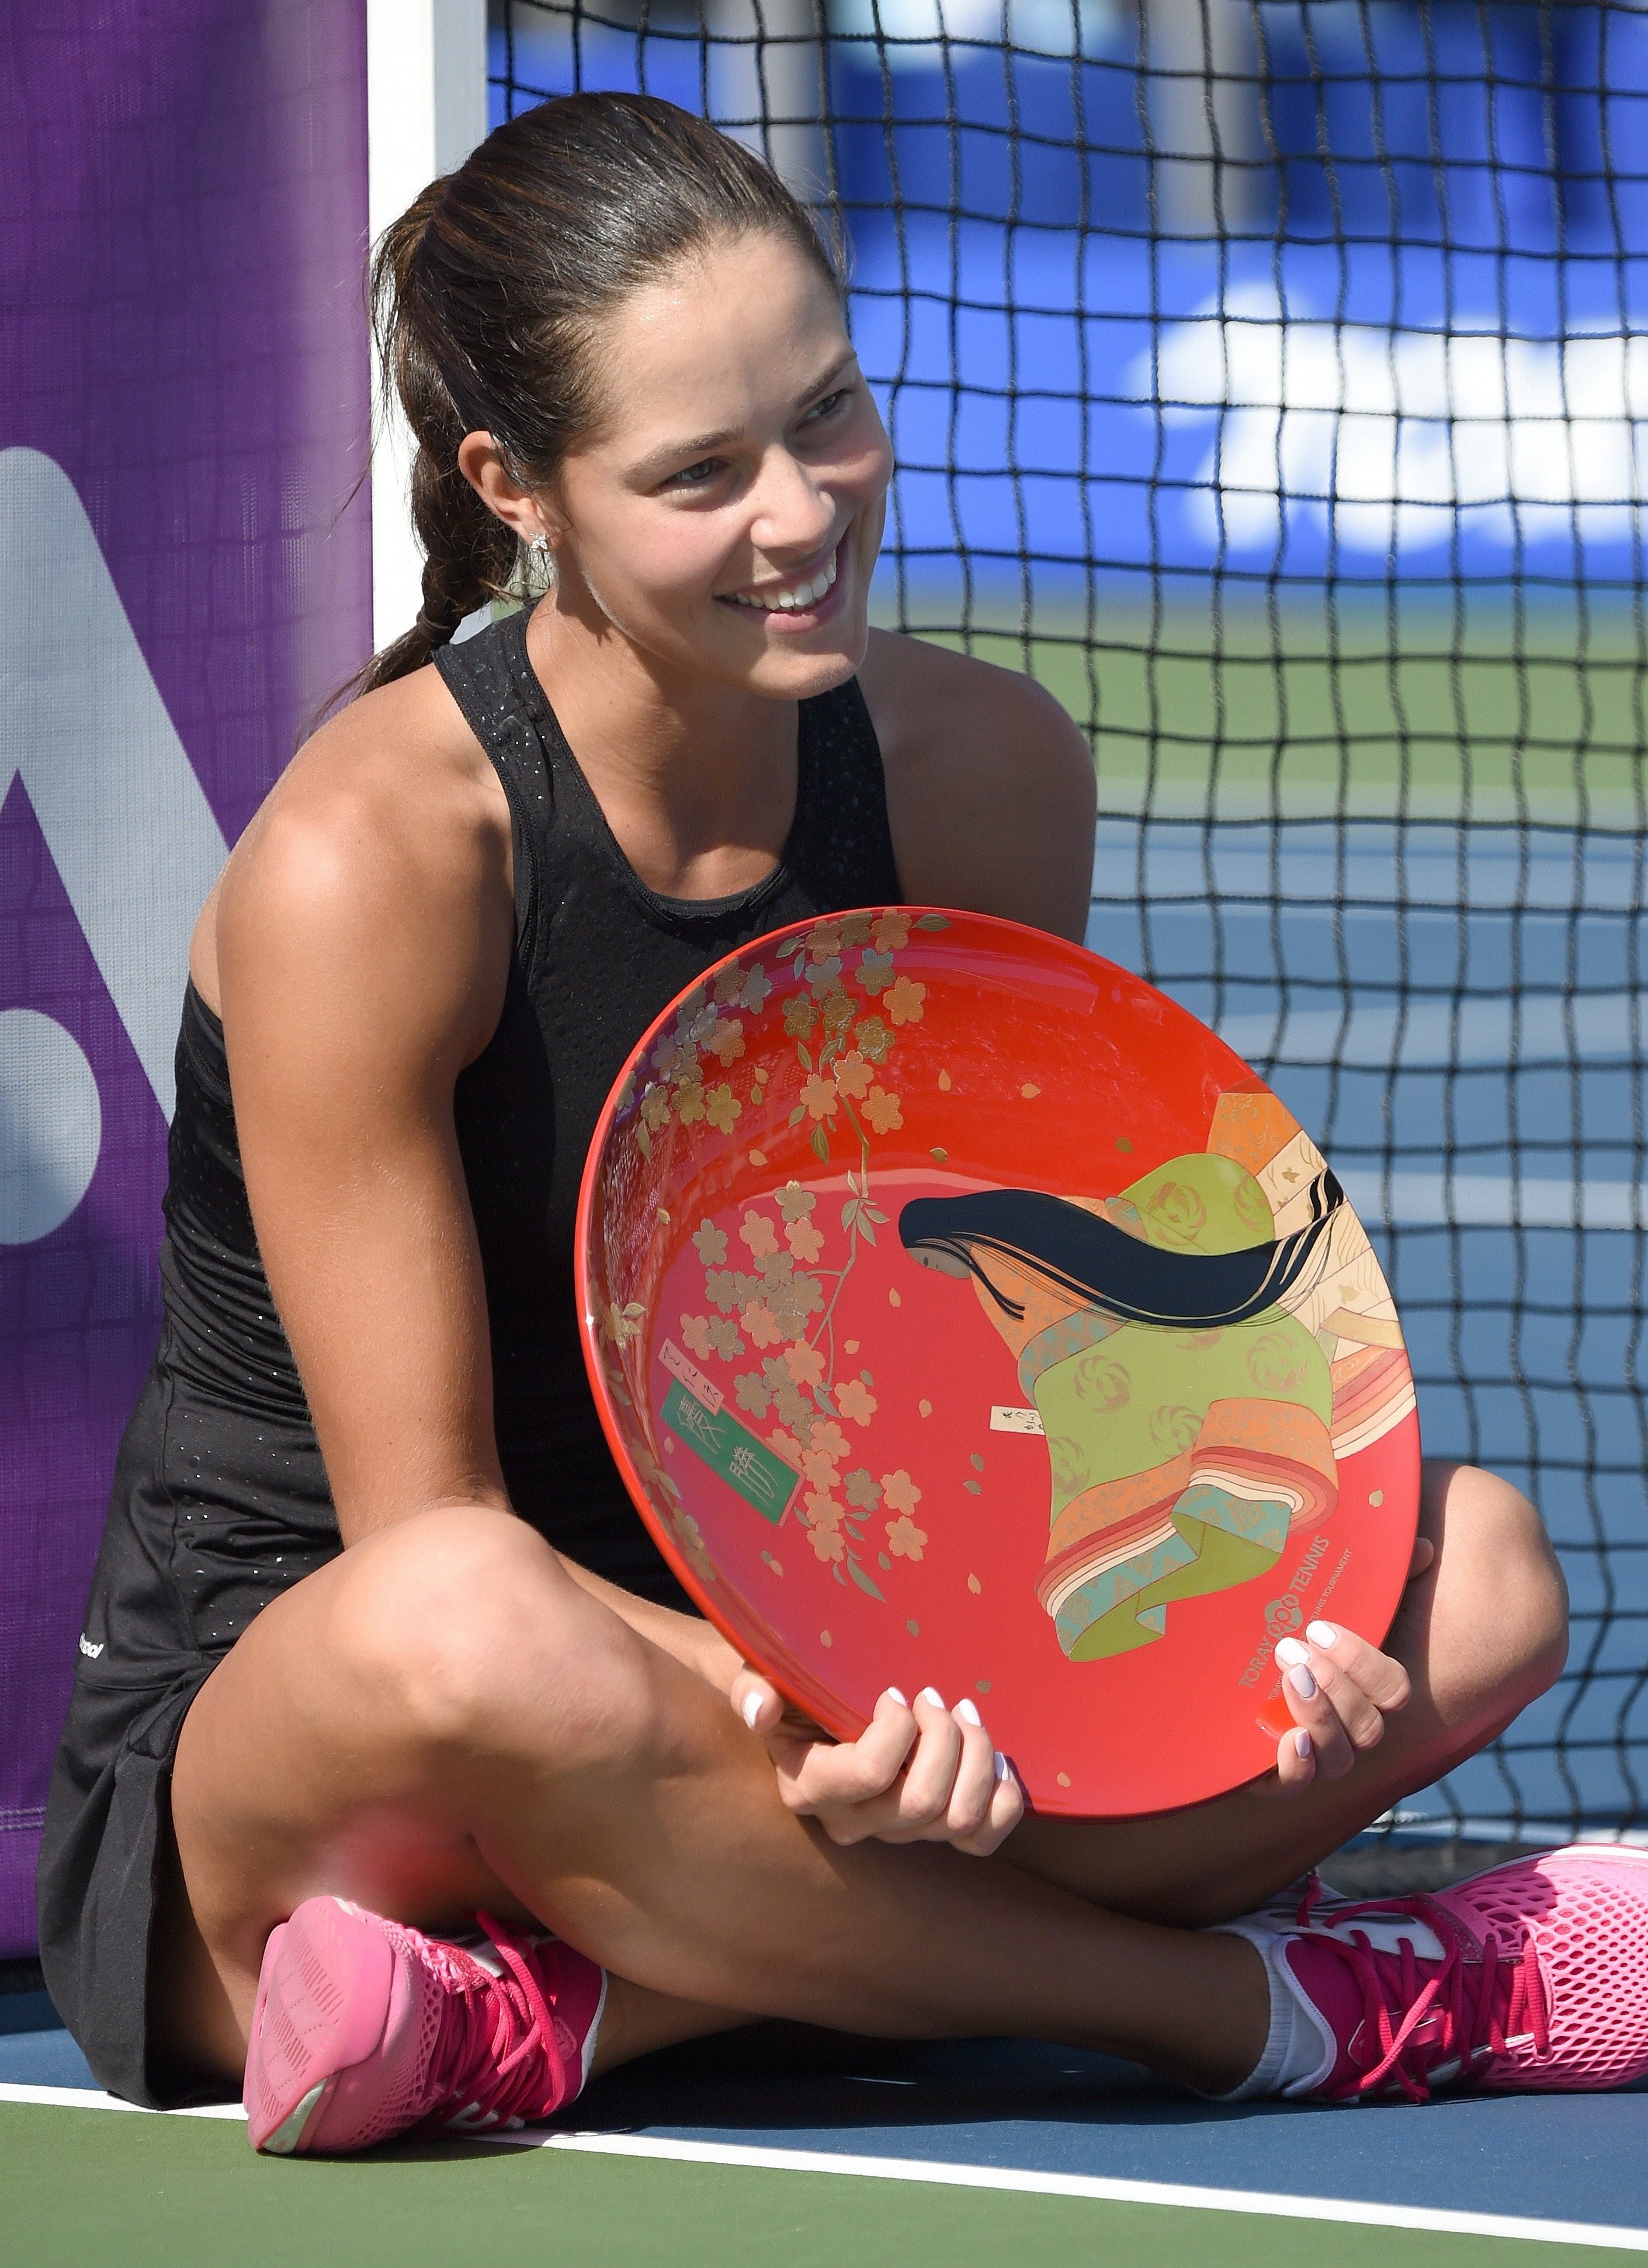 Ana Ivanovic wins the title, defeating Caroline Wozniacki in the final match.